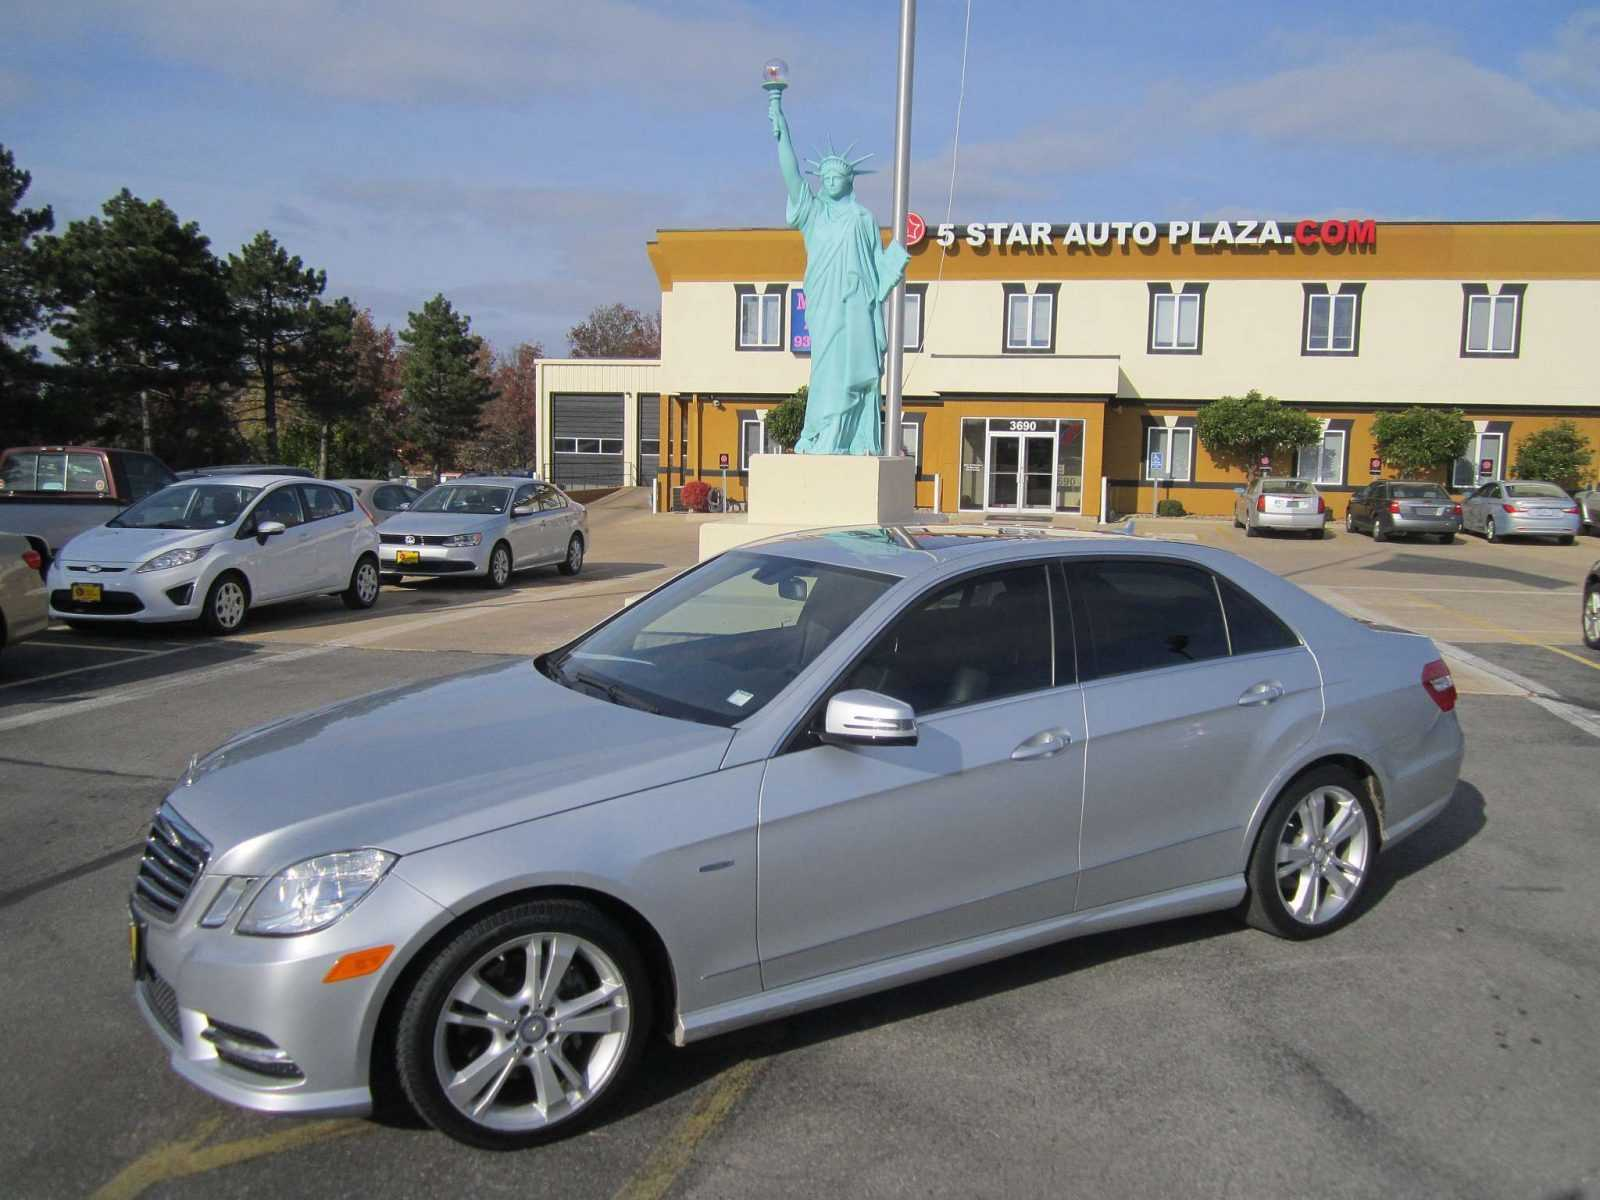 Pre owned mercedes cars for sale in st charles mo for St charles mercedes benz dealership